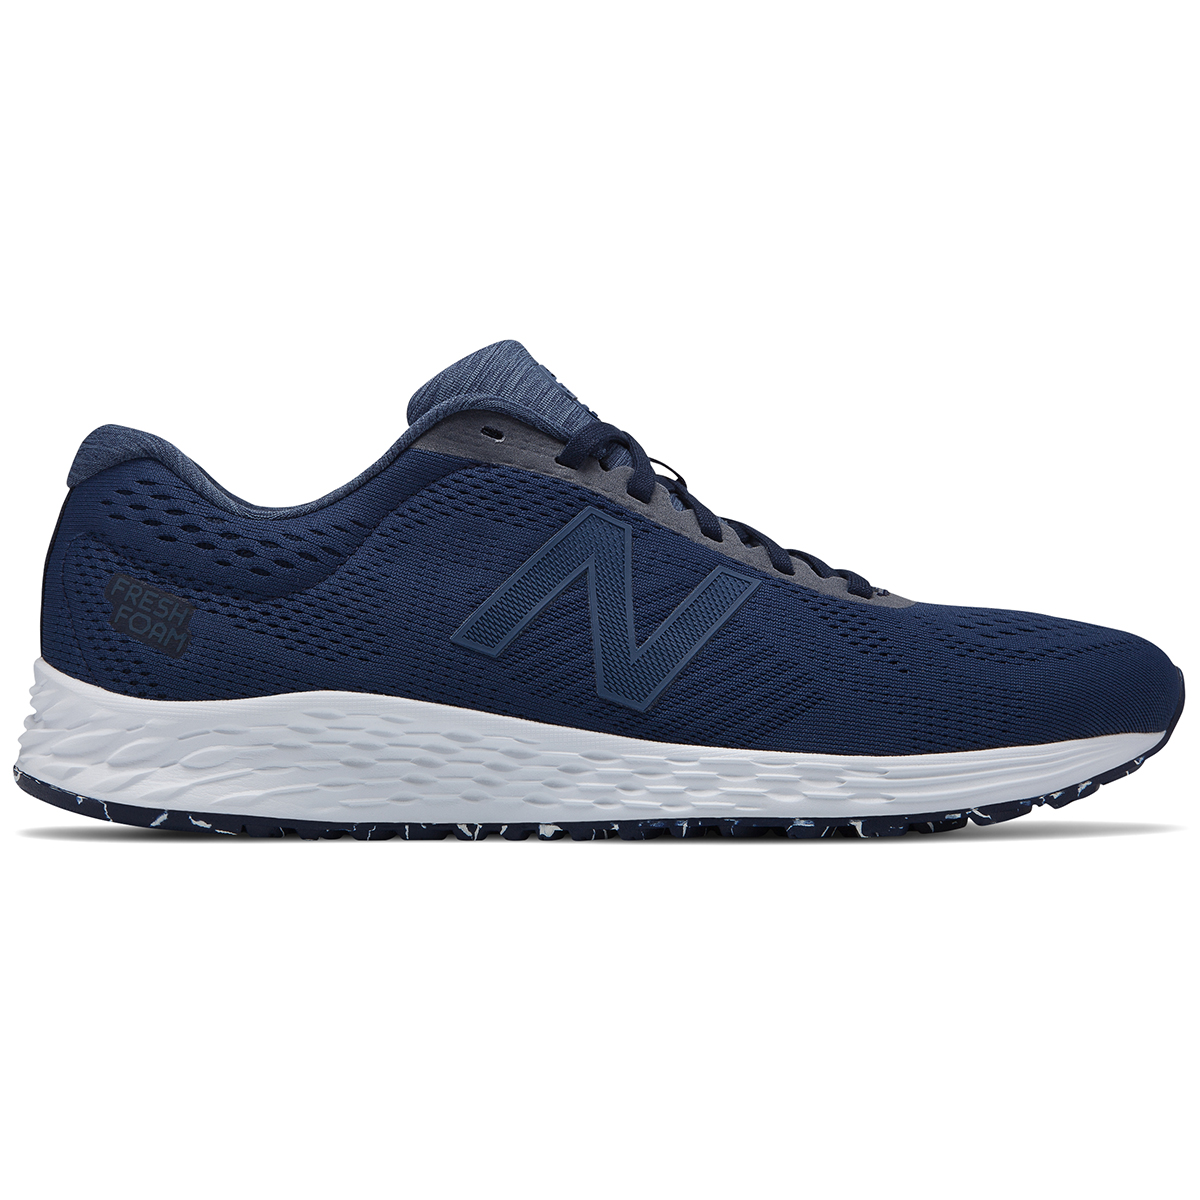 New Balance Men's Fresh Foam Arishi Sport Running Shoes - Blue, 9